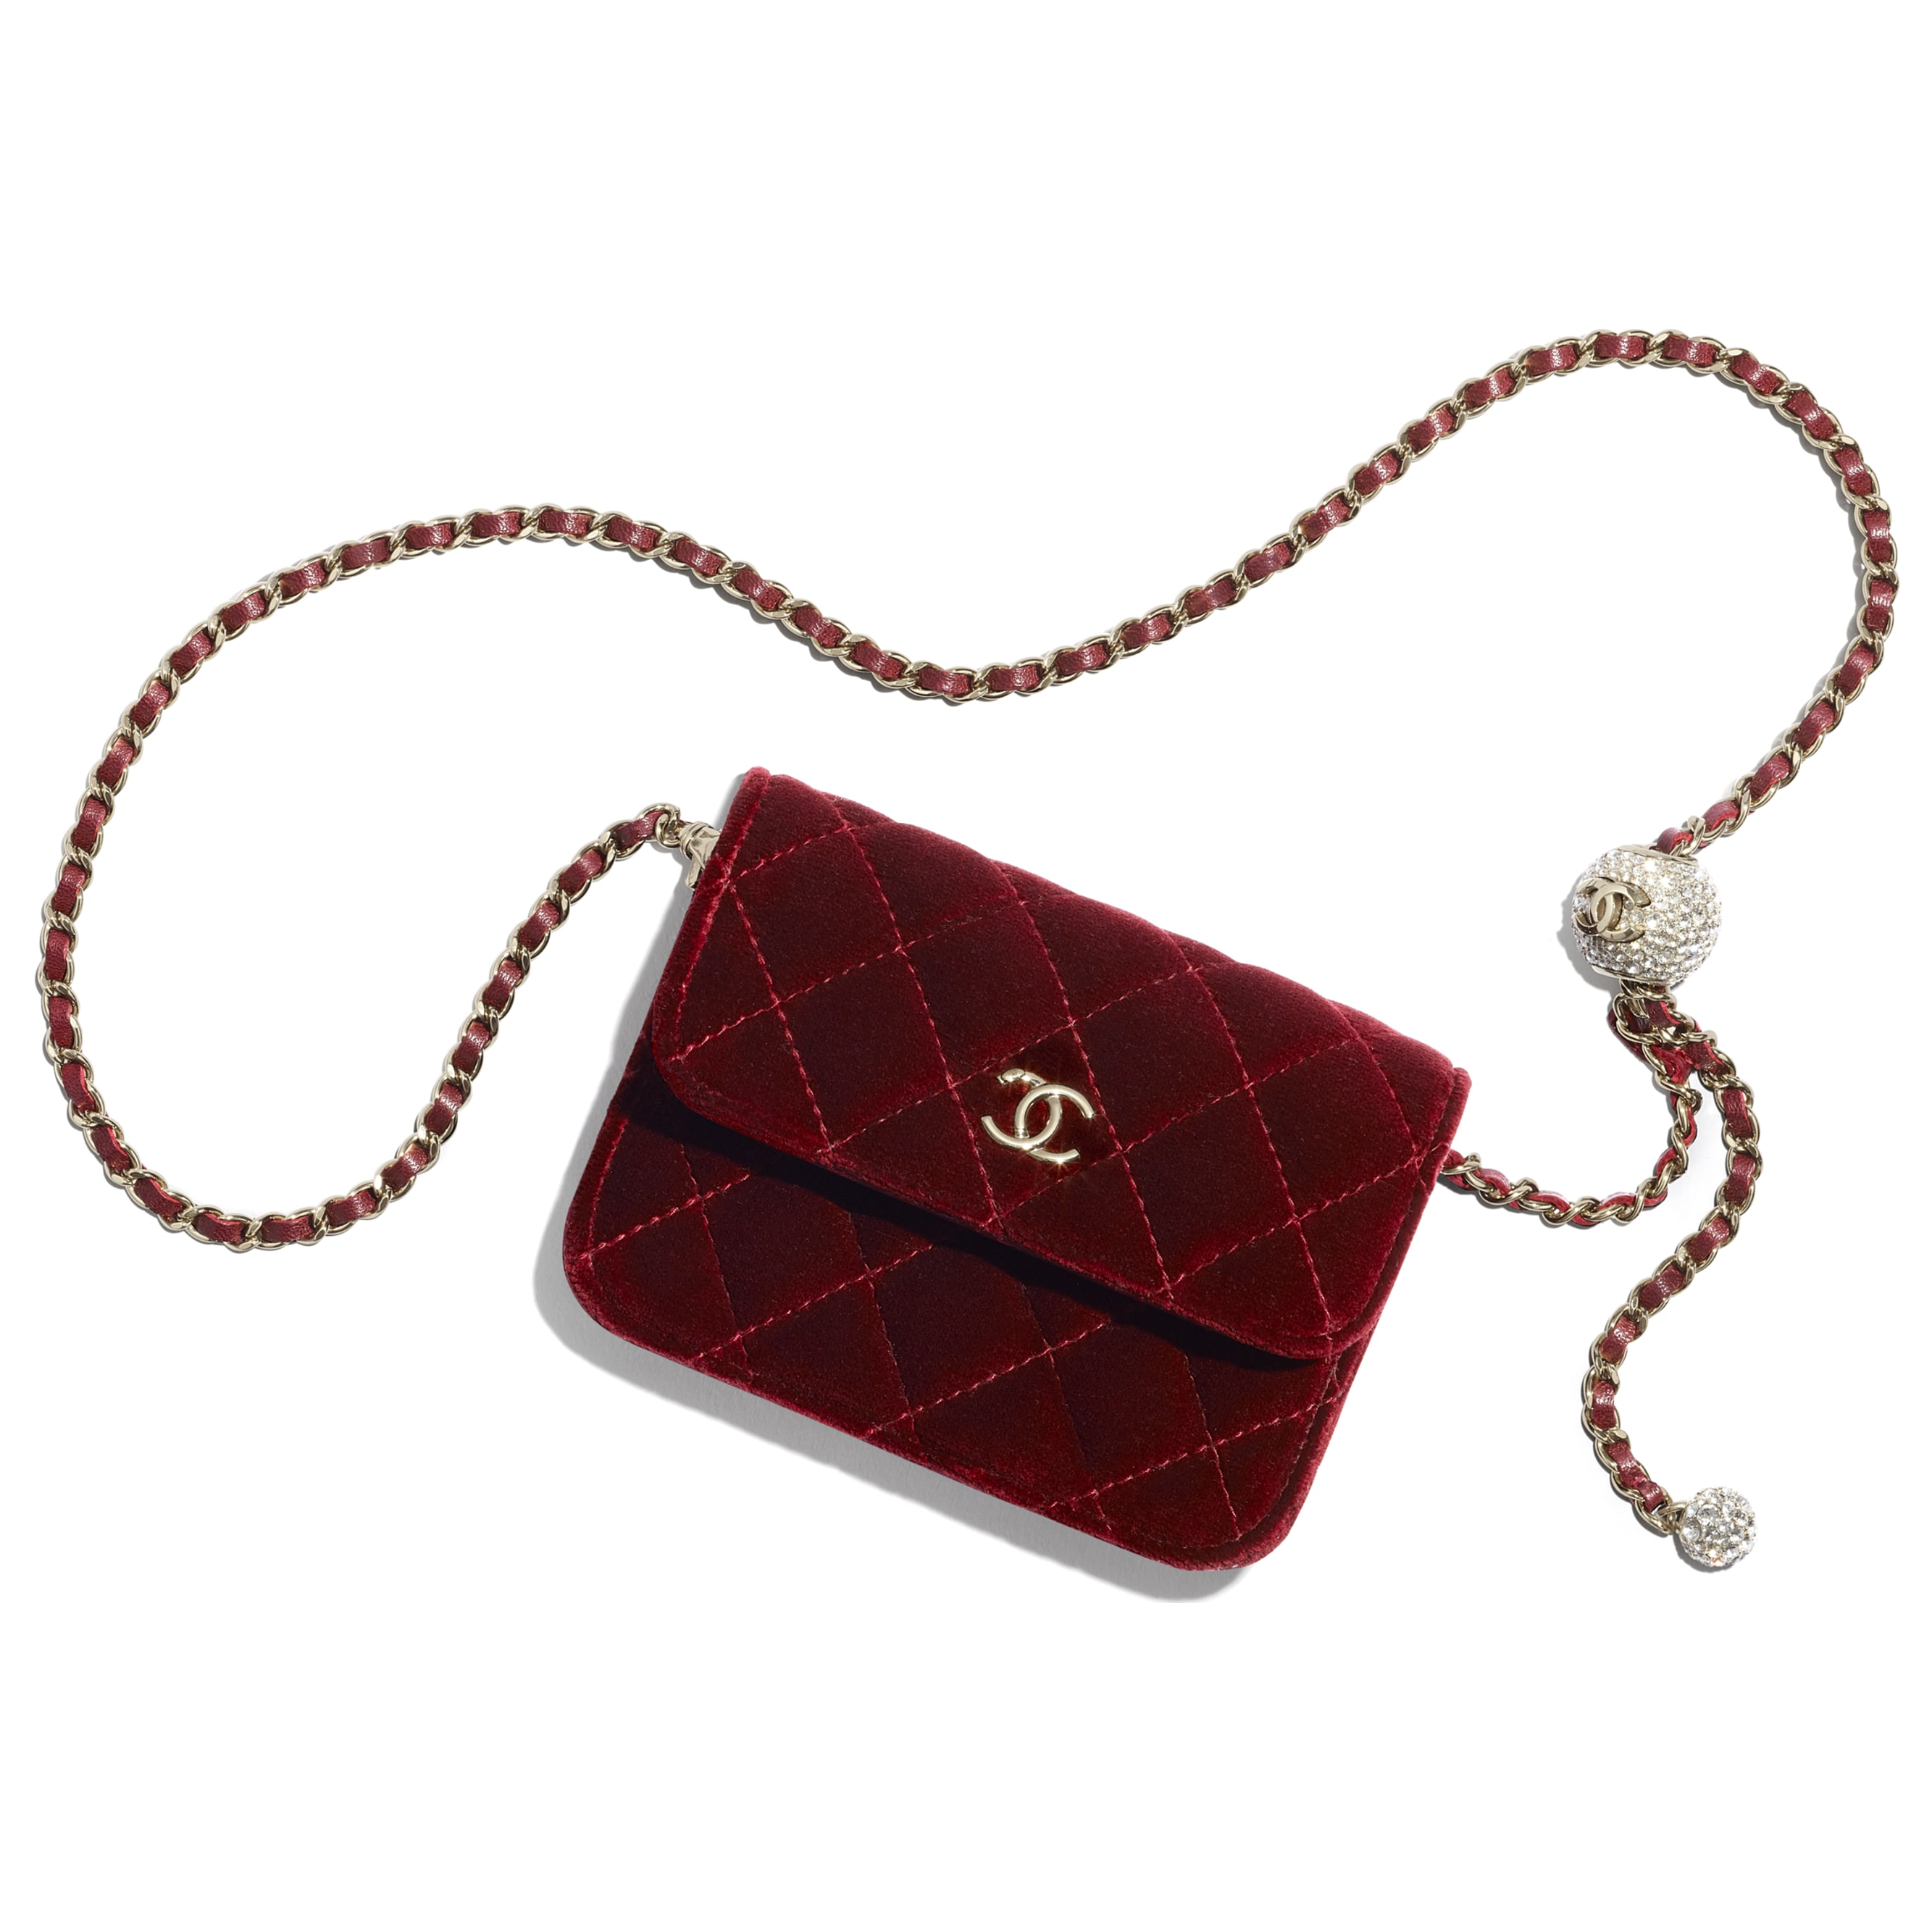 Clutch With Chain - Burgundy - Velvet, Diamanté & Gold-Tone Metal - CHANEL - Default view - see standard sized version